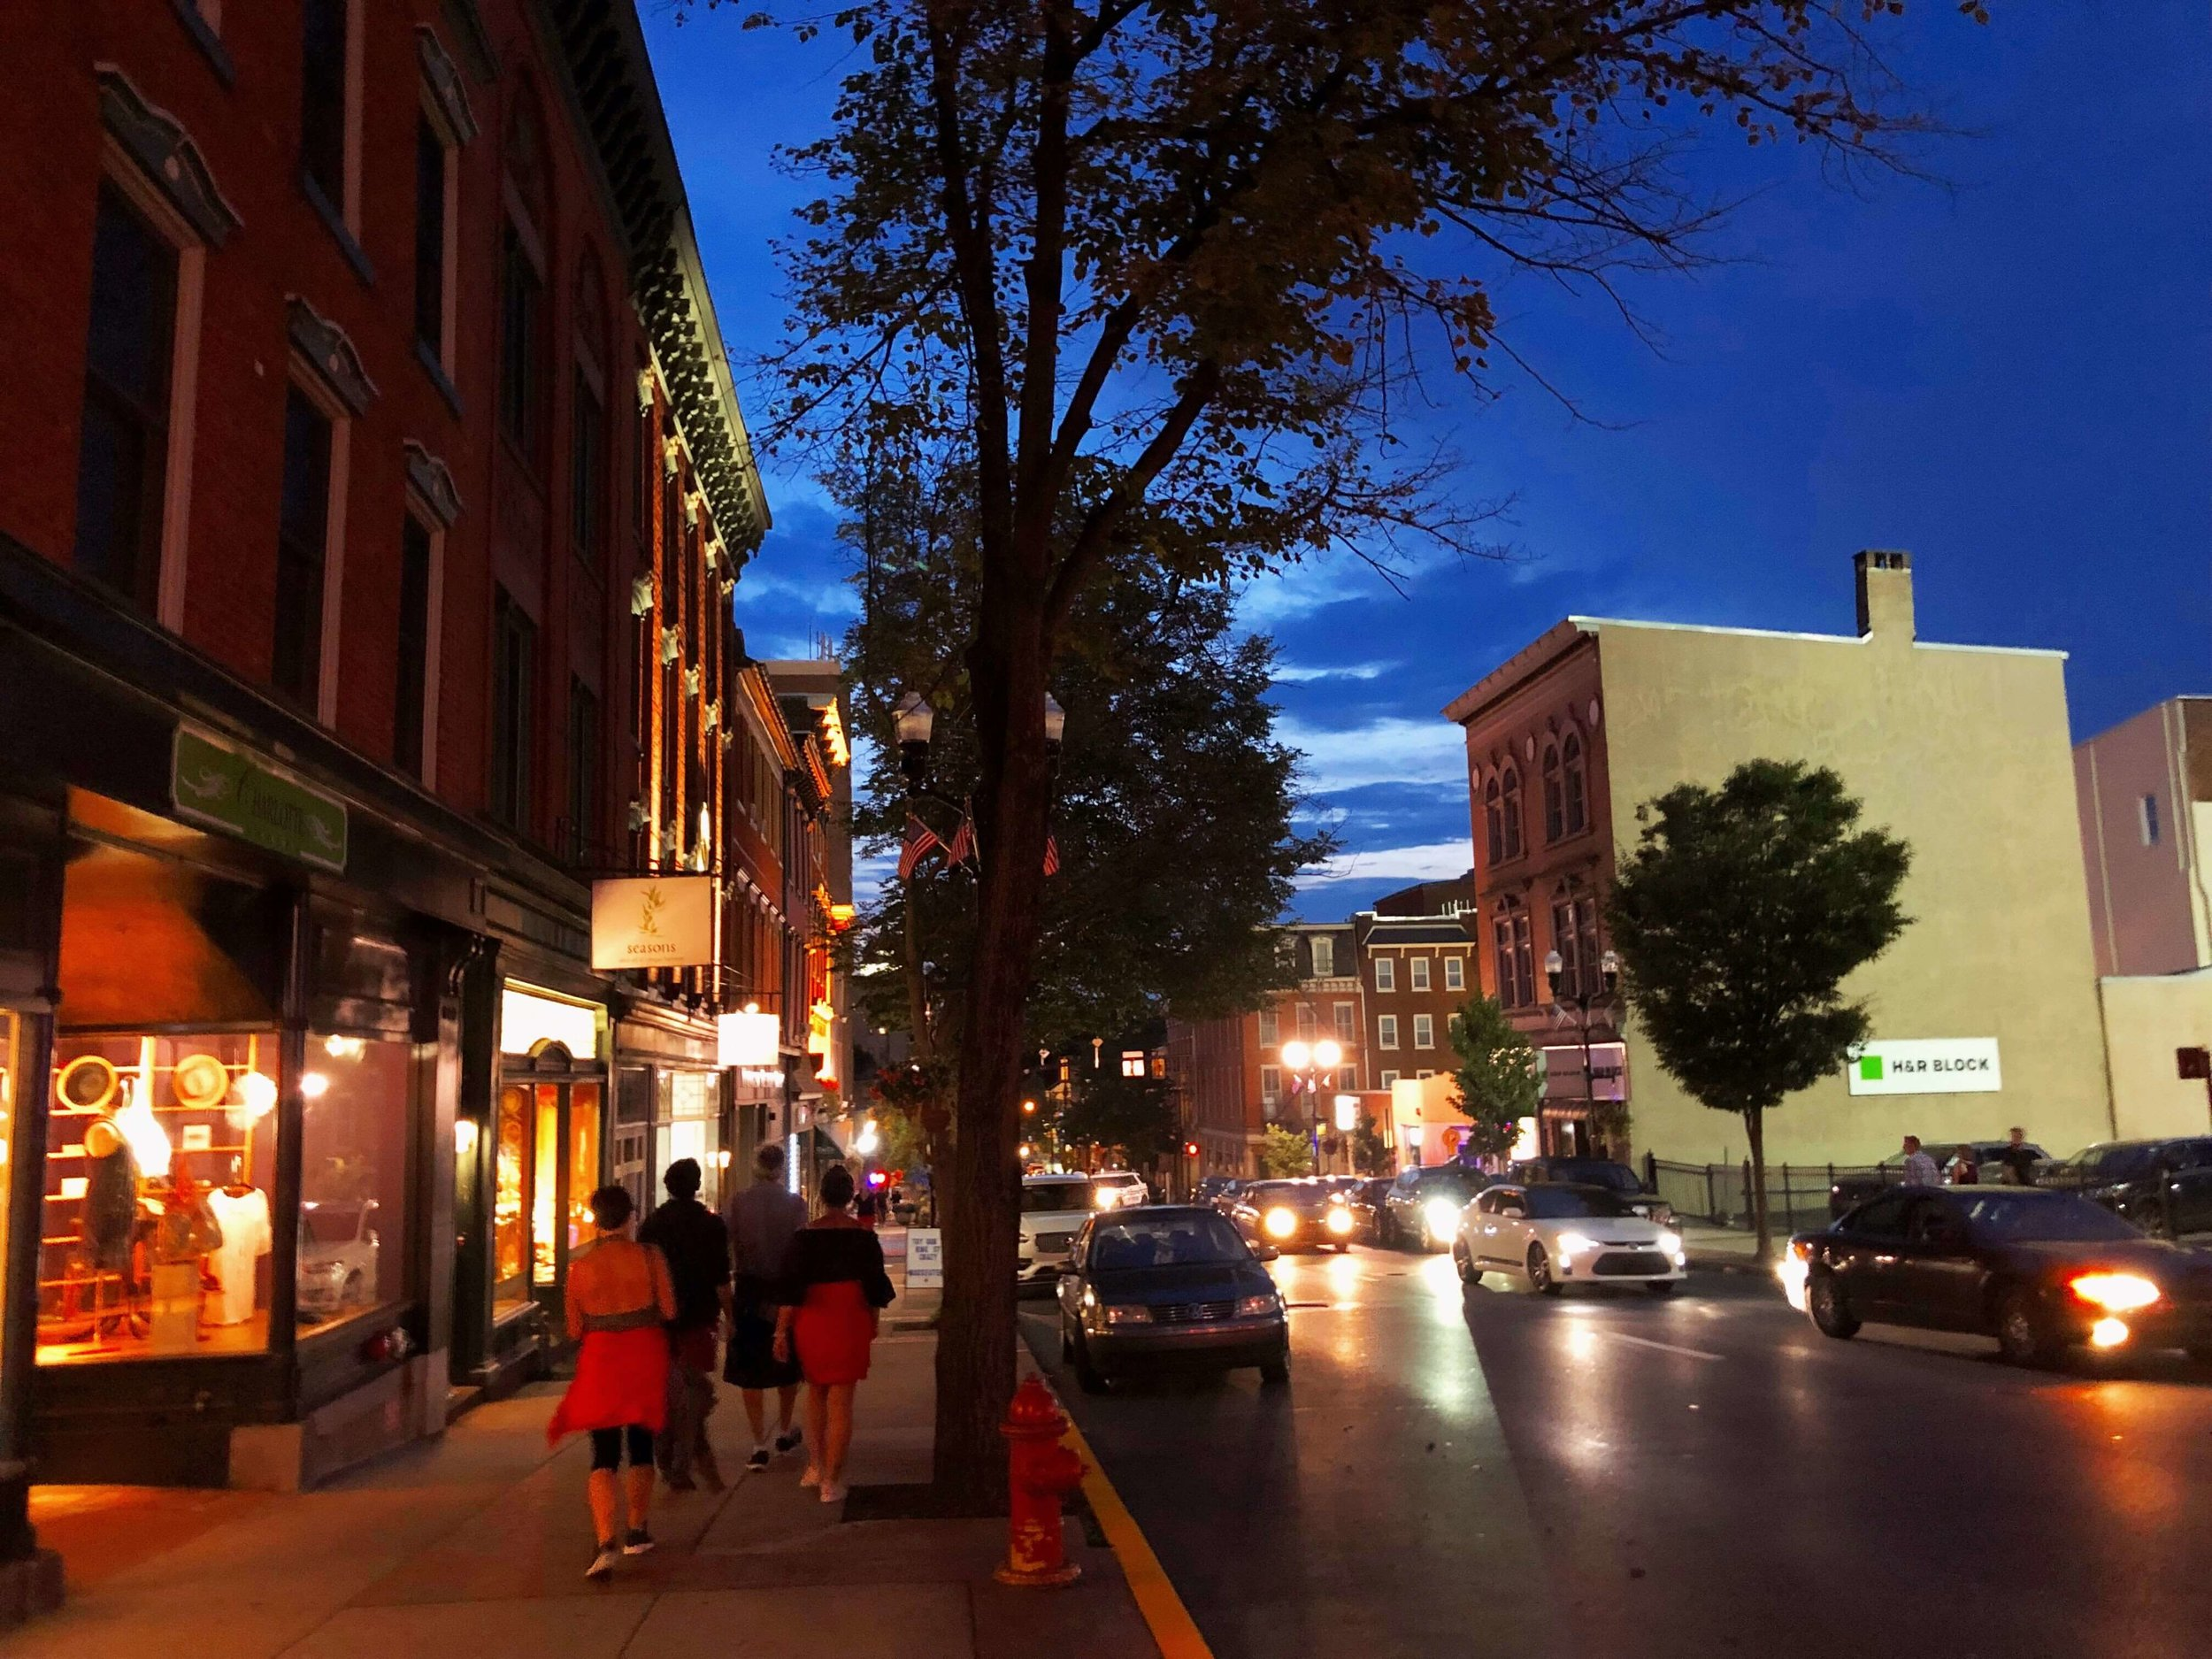 Nighttime on King Street